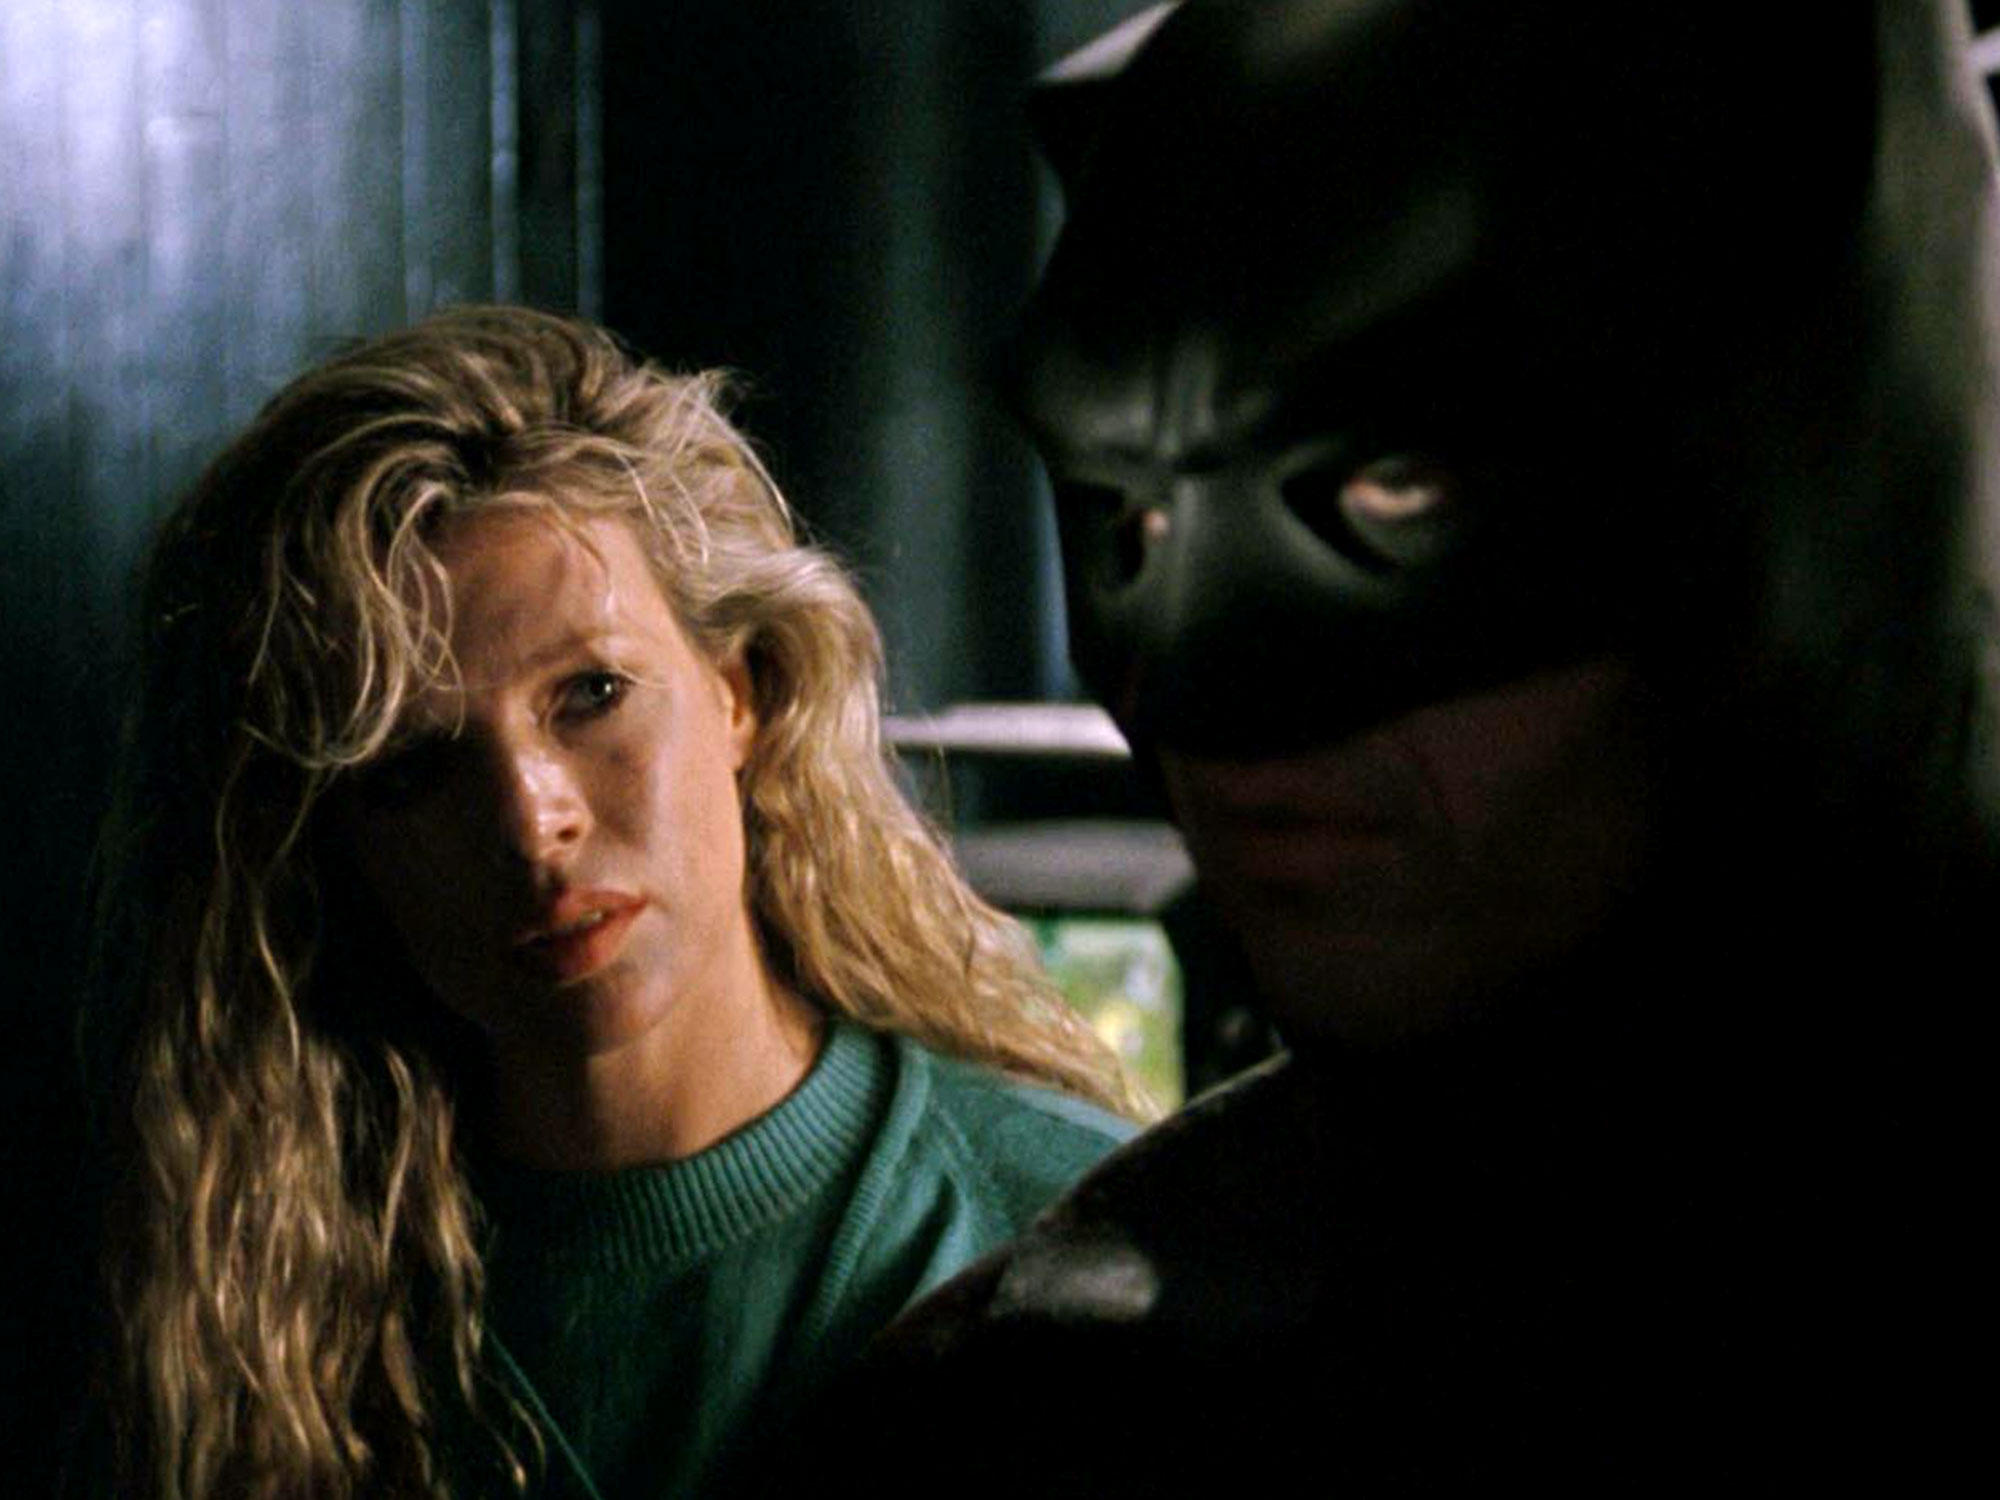 Hollywood could still learn a thing or two from Tim Burton's Batman